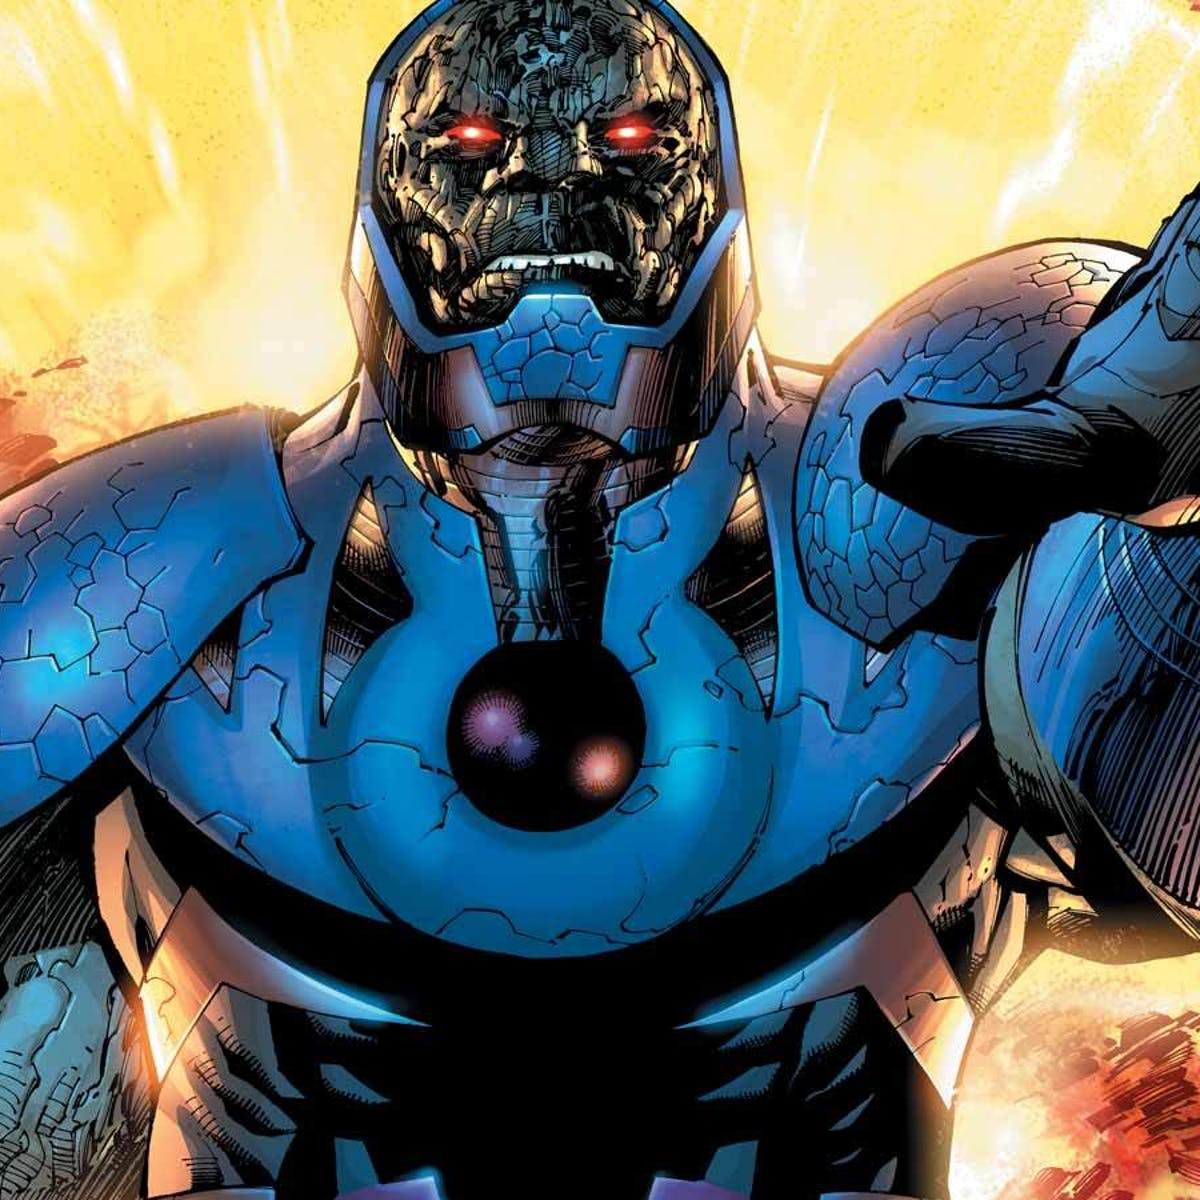 New Snyder Cut photo reveals Darkseid's epic 'Justice League' face-off